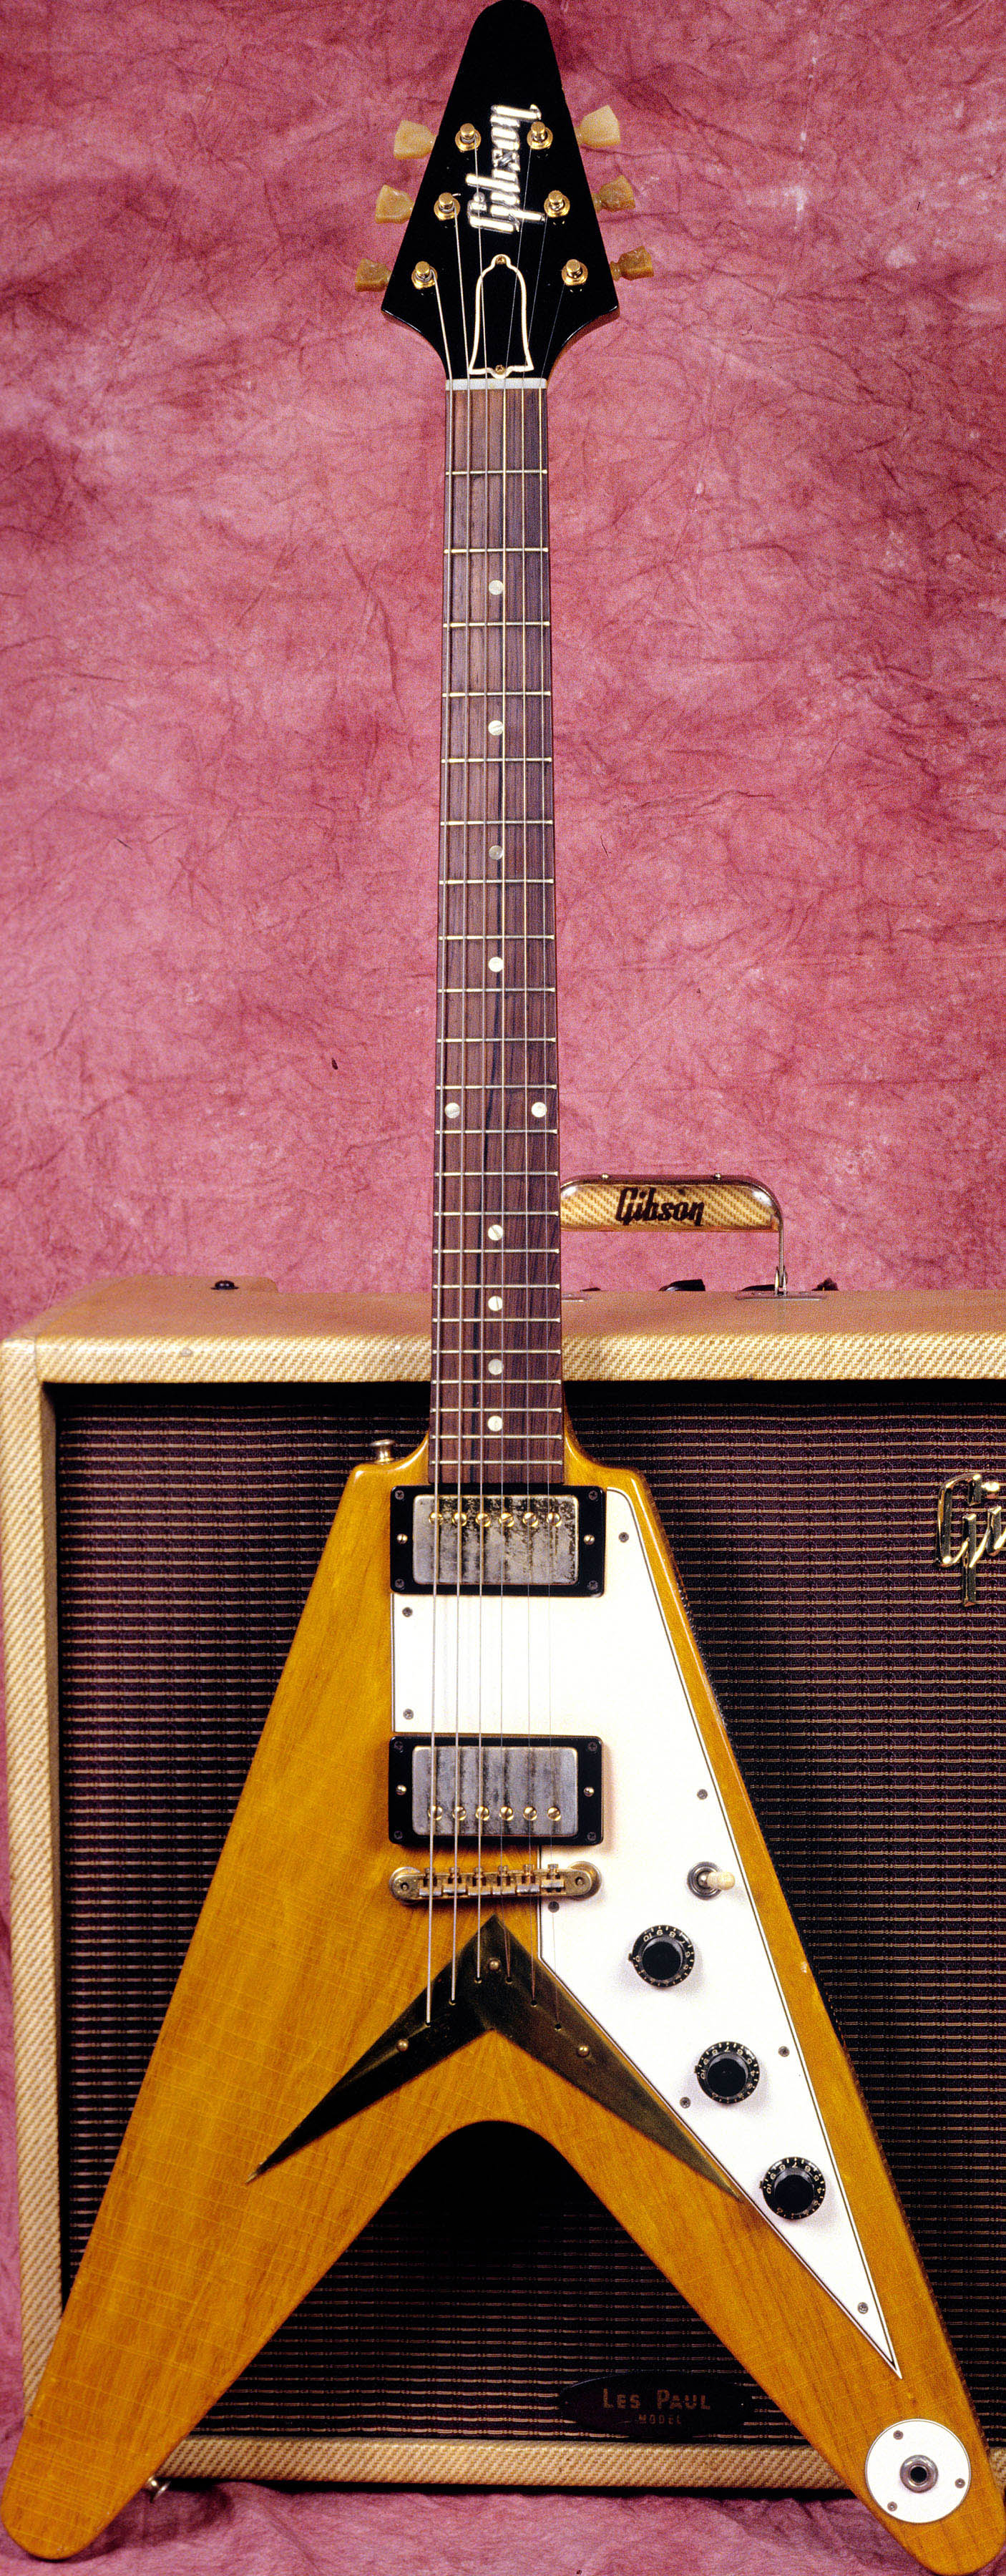 58 flying v plans page 8 my les paul foruma nice shot of a 59